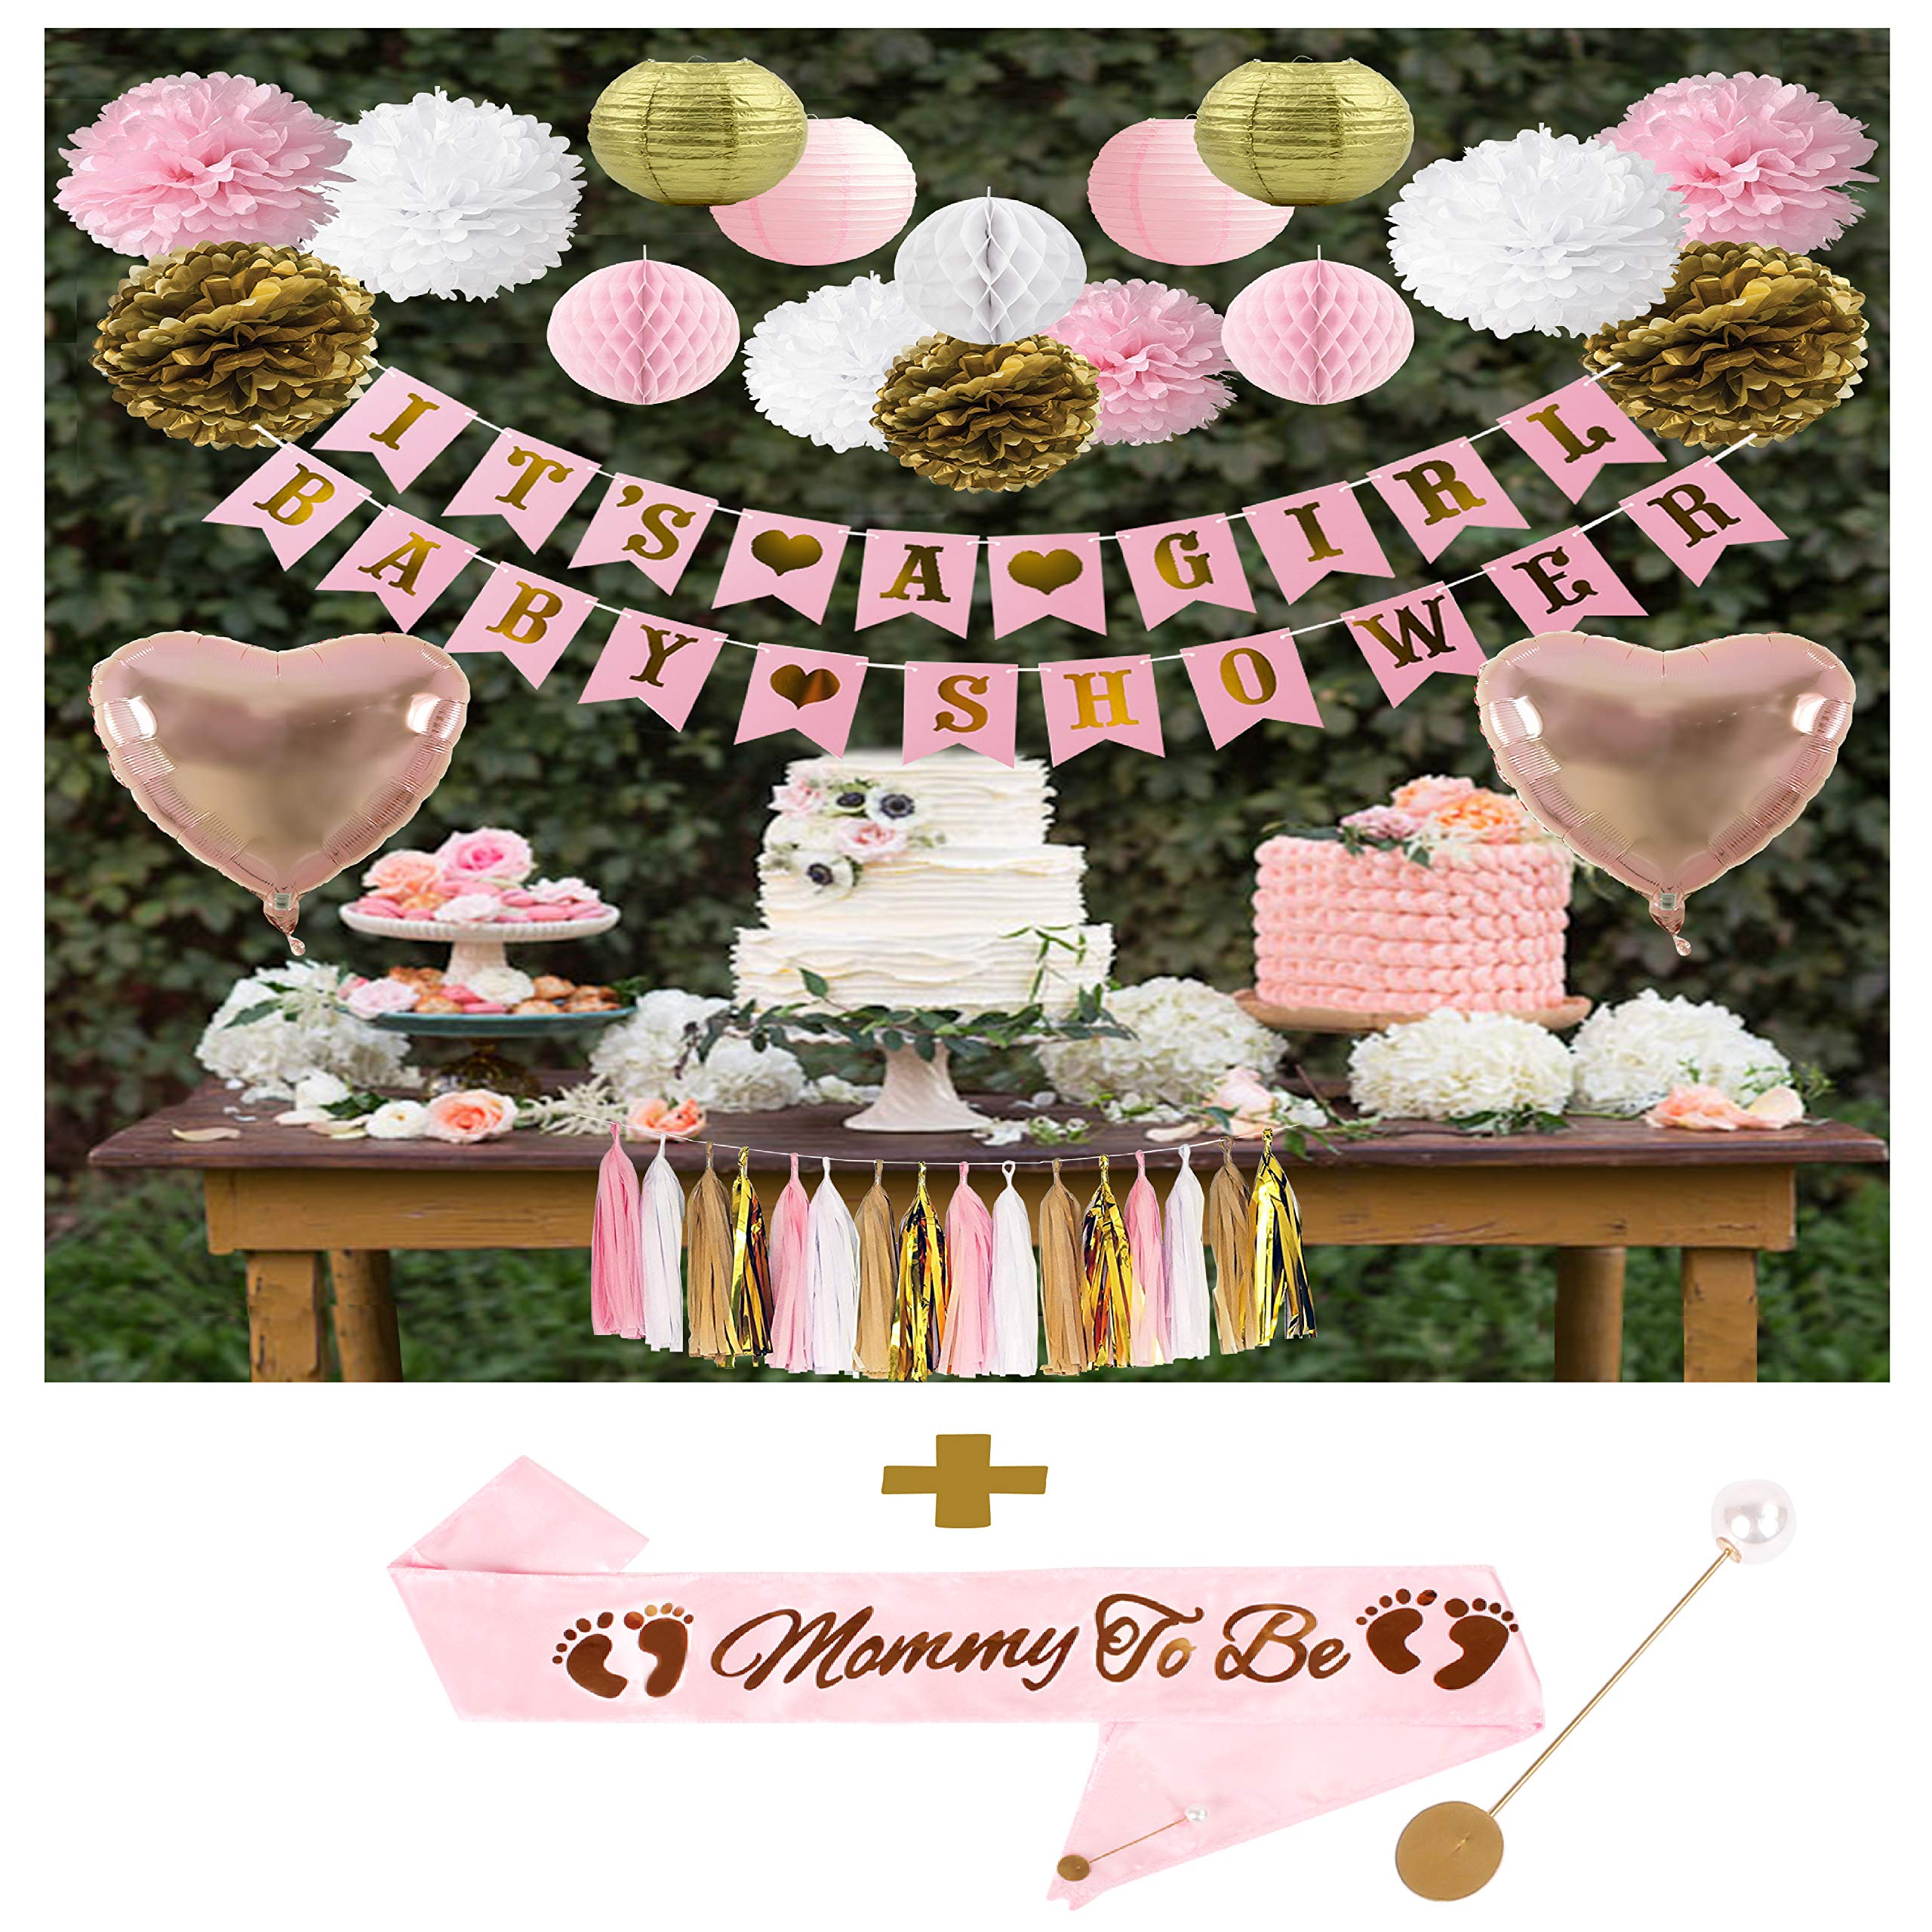 Baby Girl Shower Decorations Set | Mommy to Be Sash | It's a Girl & Baby Shower Banner | Heart Shaped Foil Balloons | Pom Poms | Tissue Garland | Lanterns | Perfect Package for Gifts